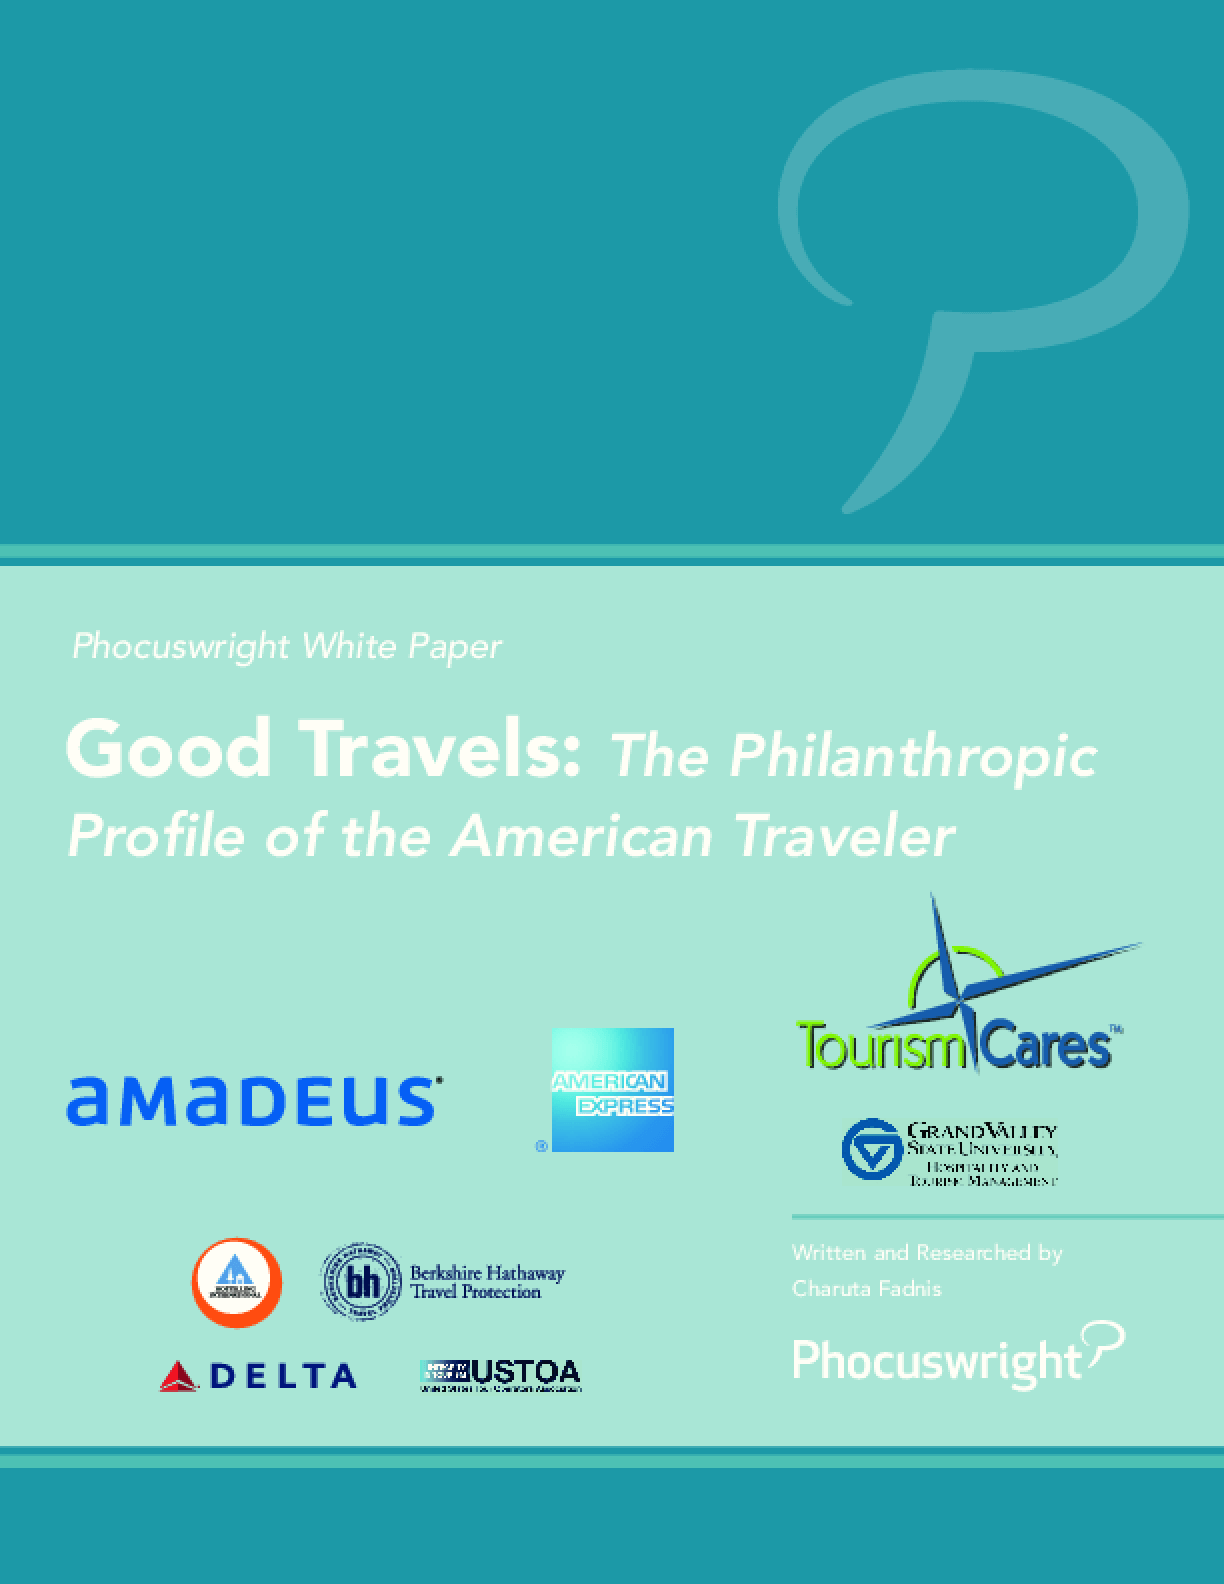 Good Travels: The Philanthropic Profile of the American Traveler